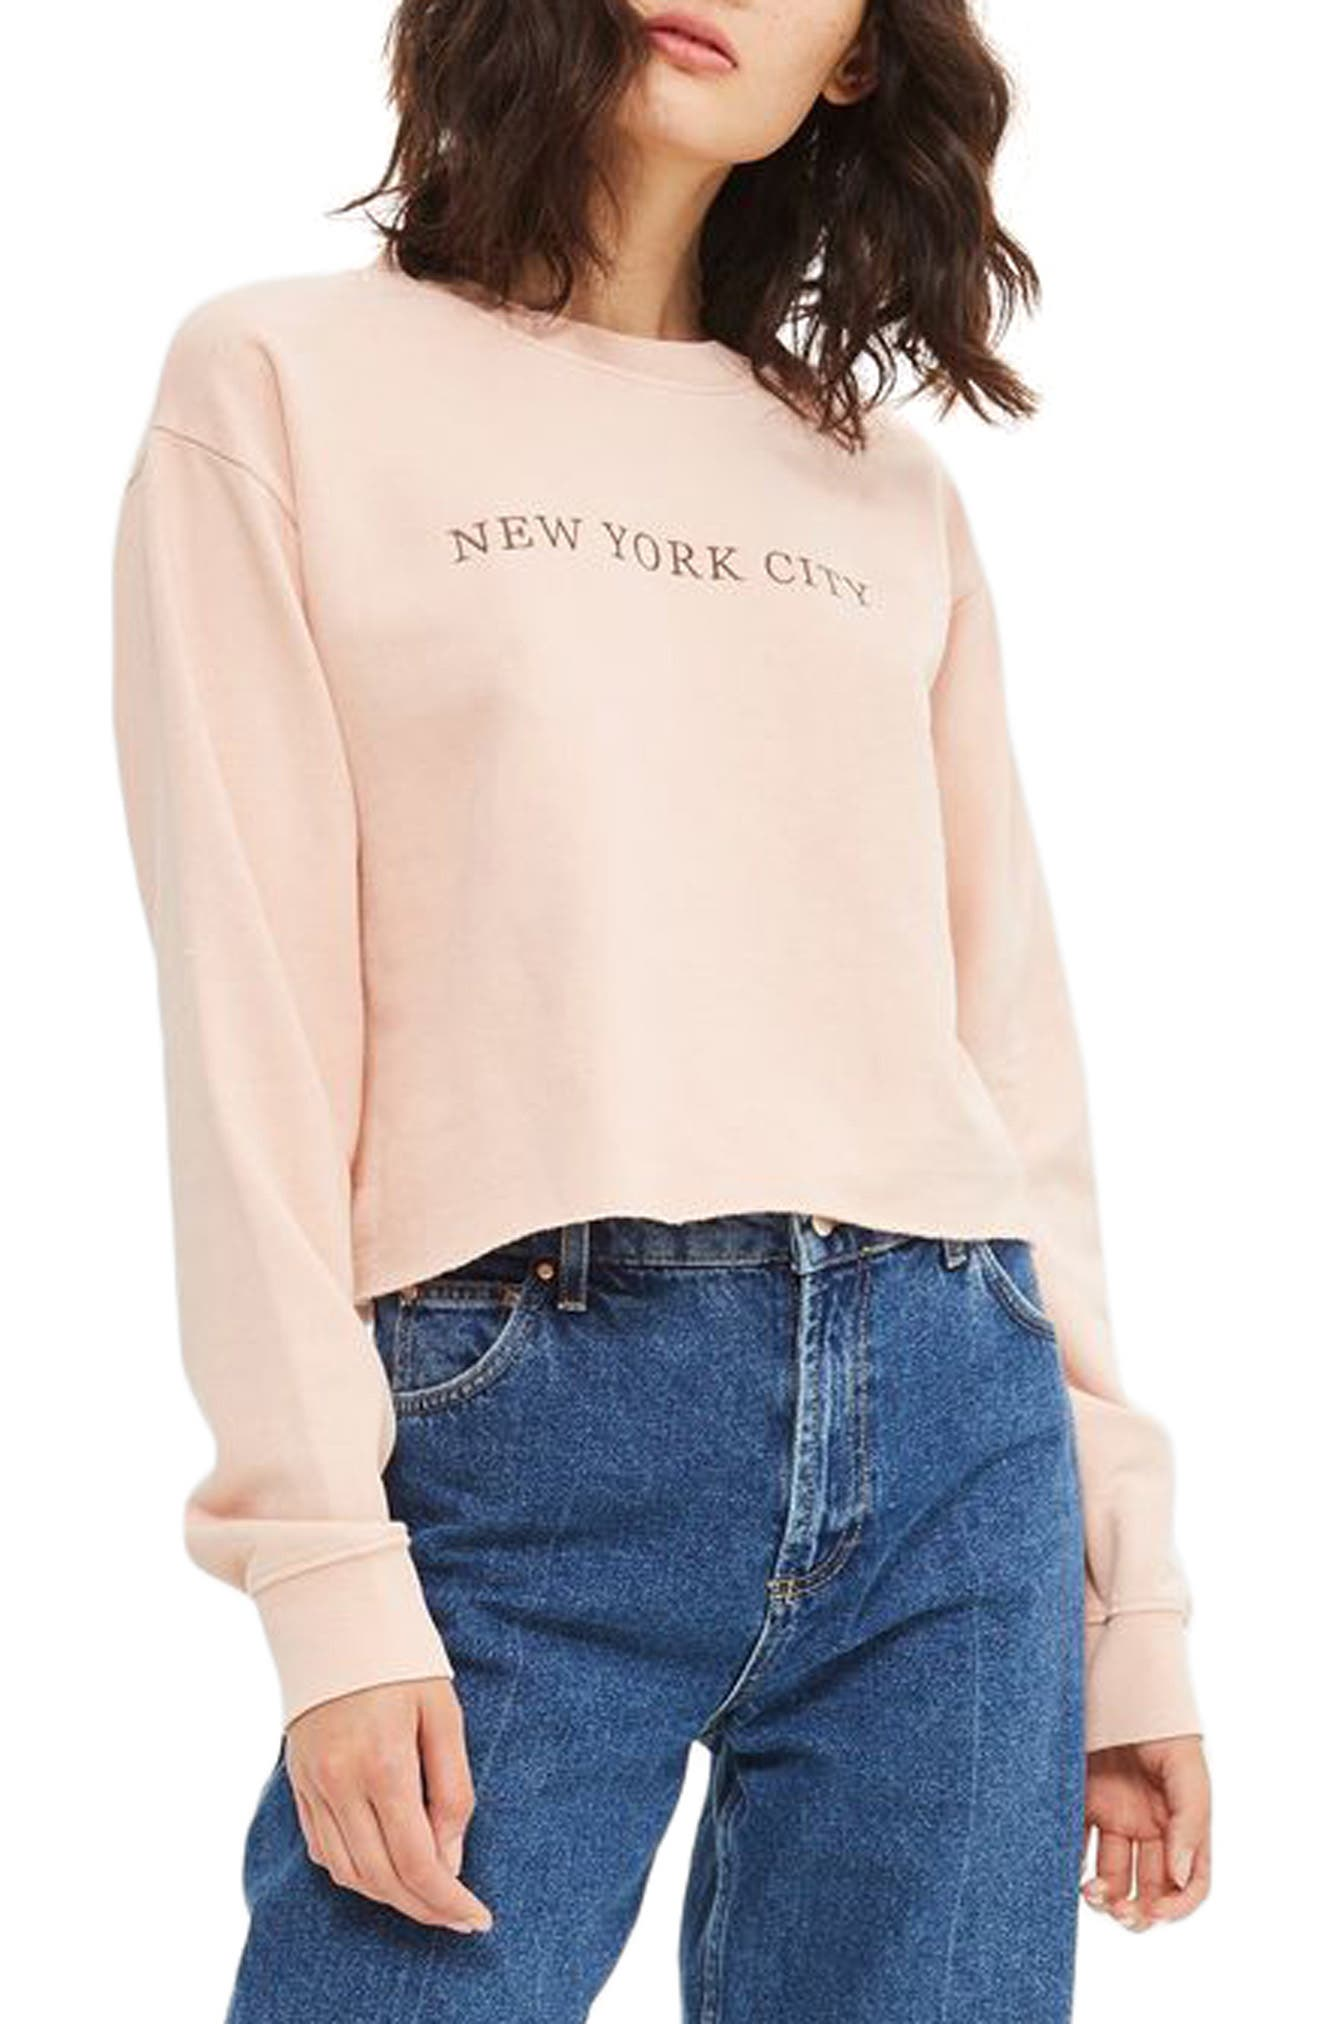 New York City Embroidered Sweatshirt,                         Main,                         color, Pink